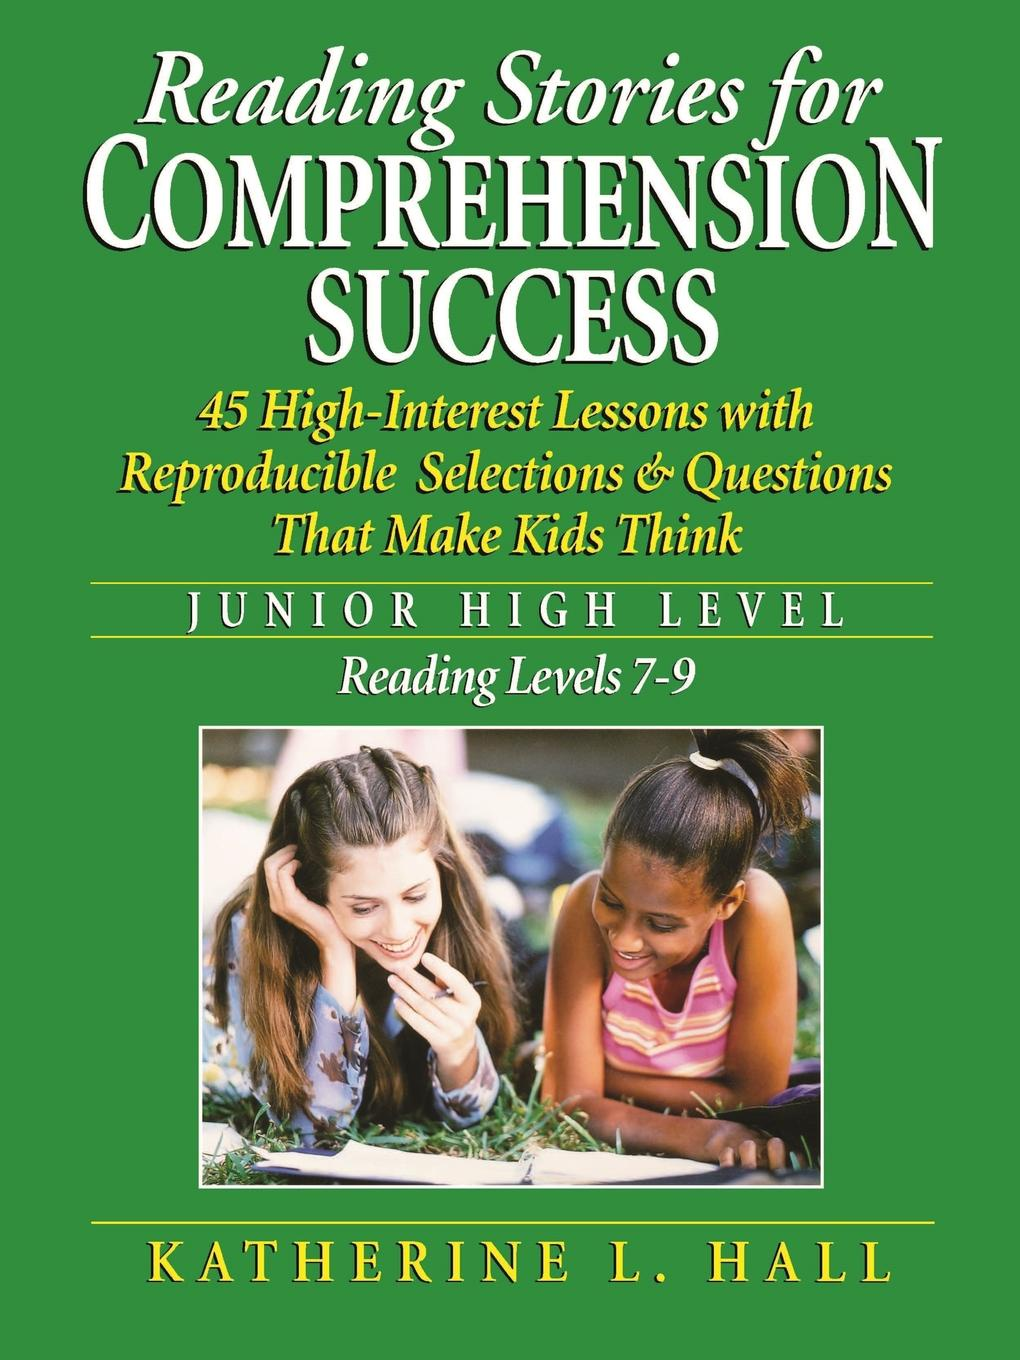 Katherine L. Hall Reading Stories for Comprehension Success Junior High Level; Reading Level 7-9. 45 High-Interest Lessons with Reproducible Selections & Questions That